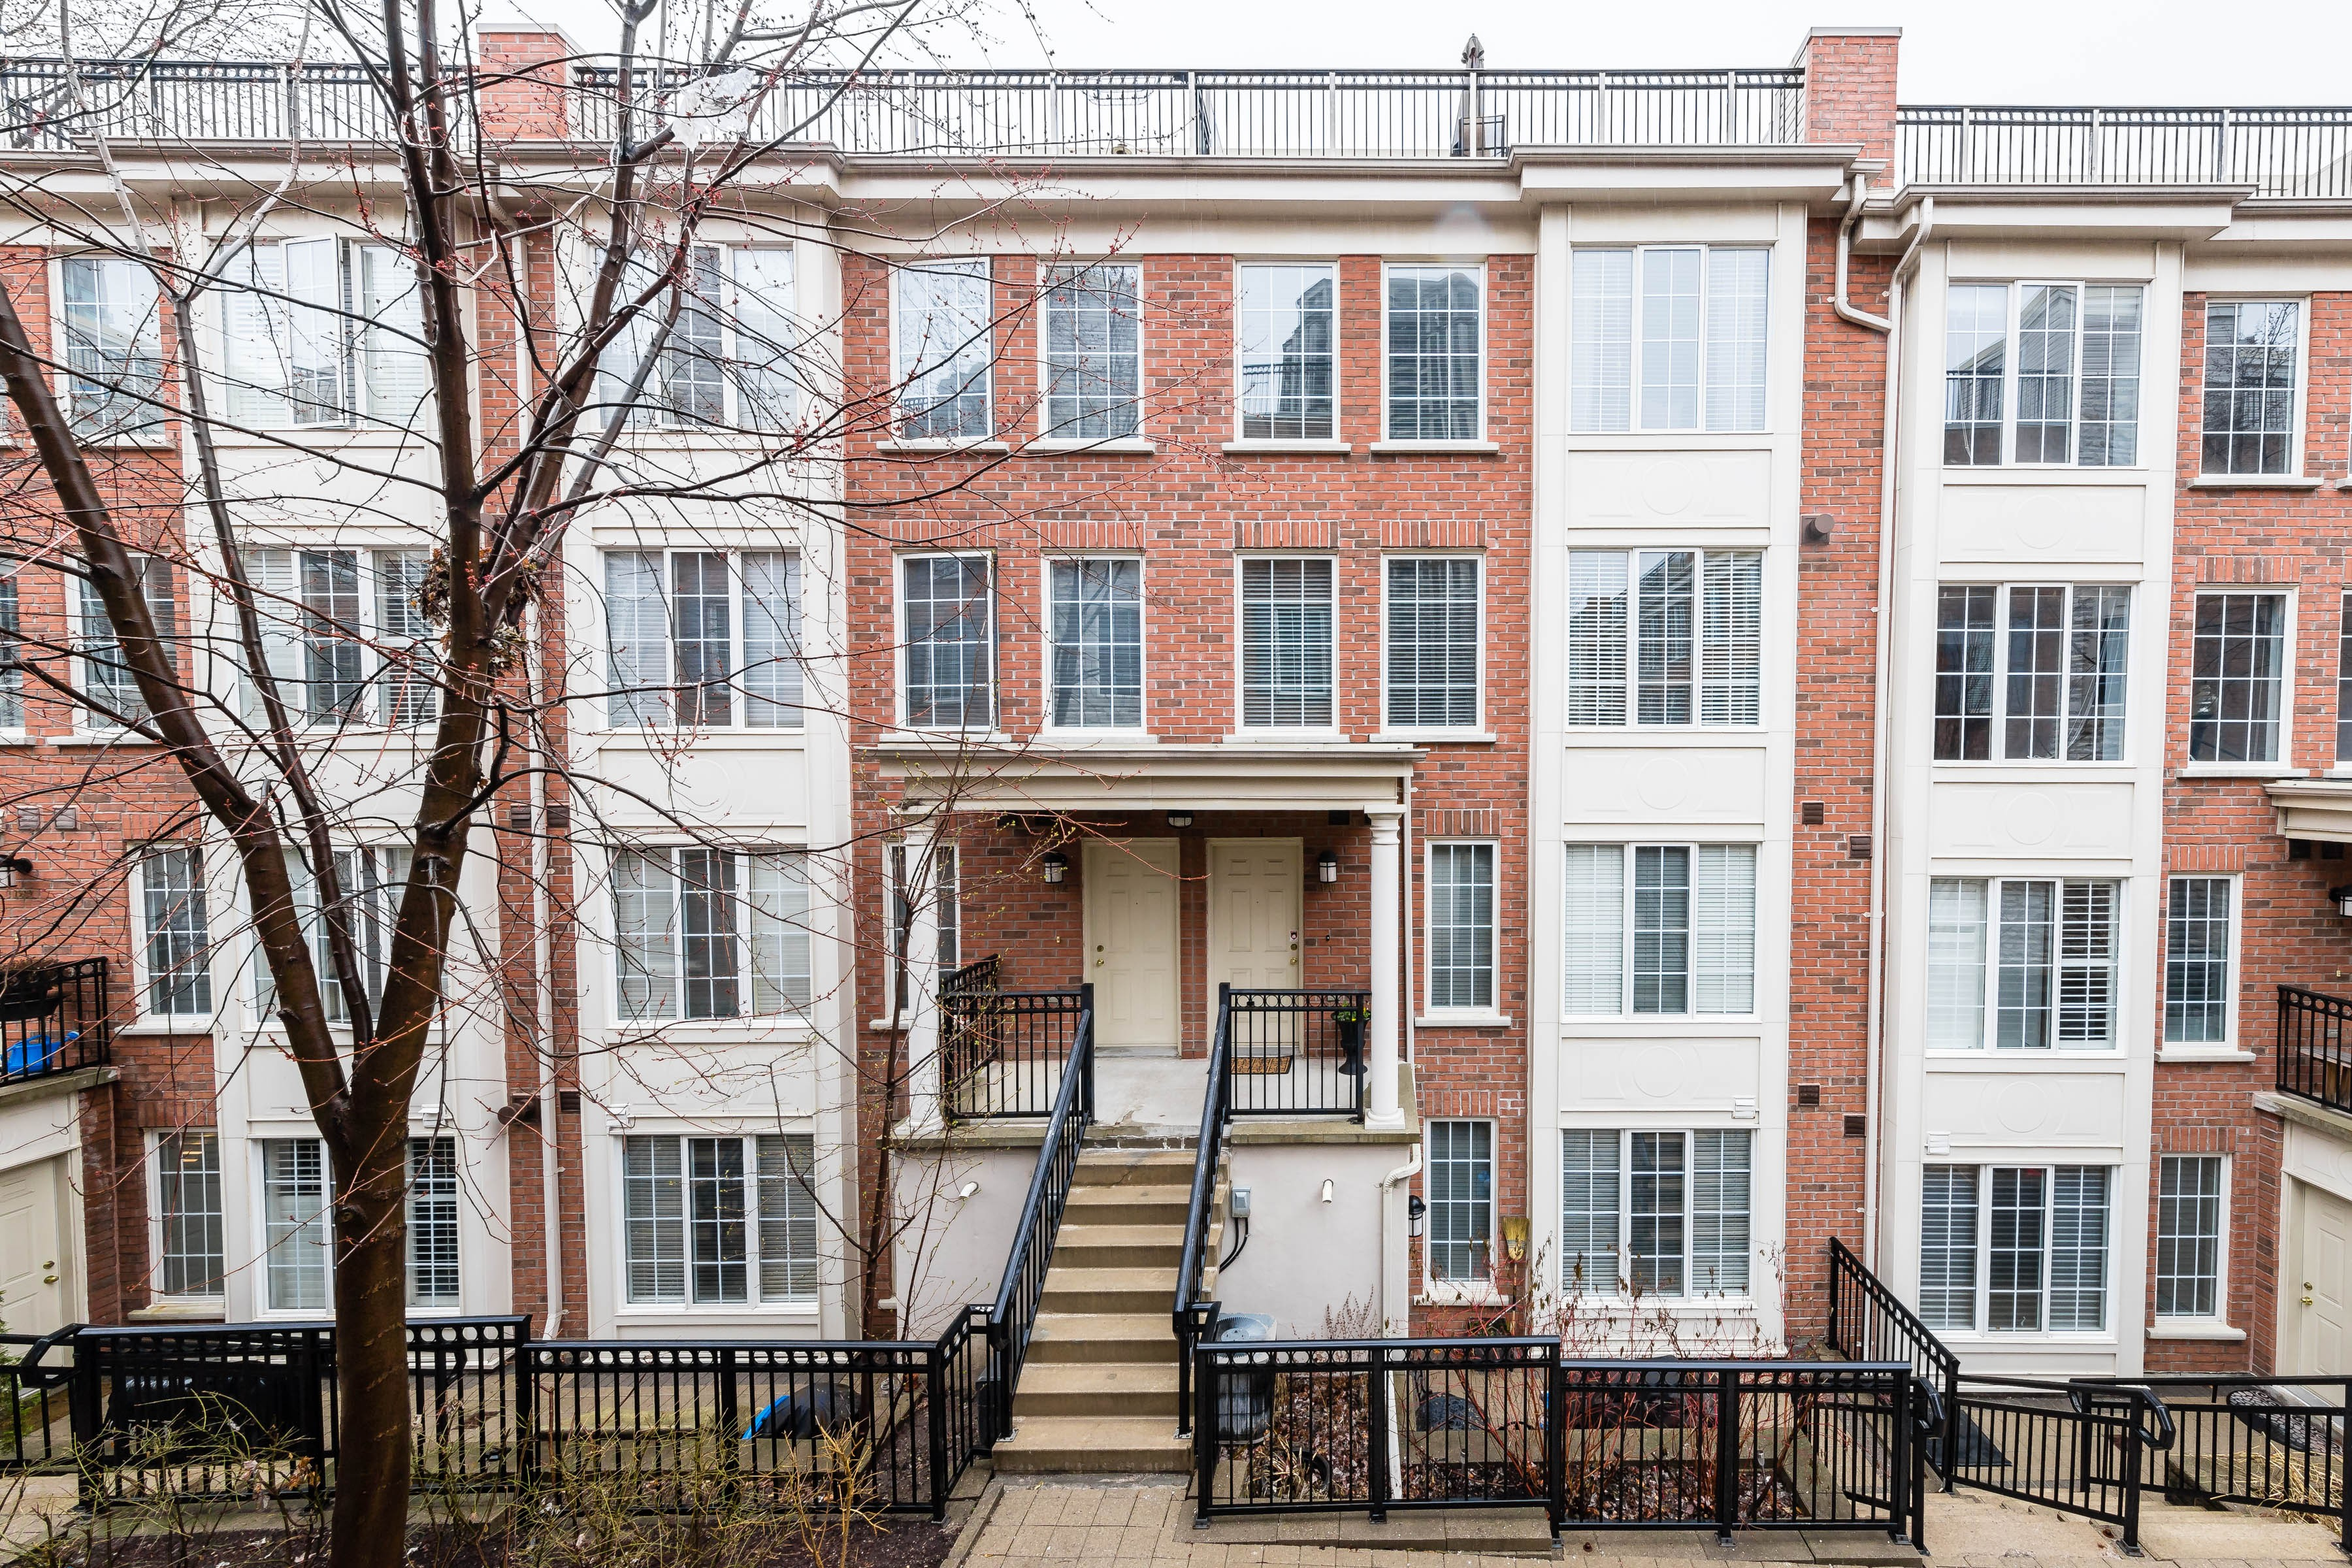 Toronto Centre Townhomes at 5 Everson Dr, Toronto 1